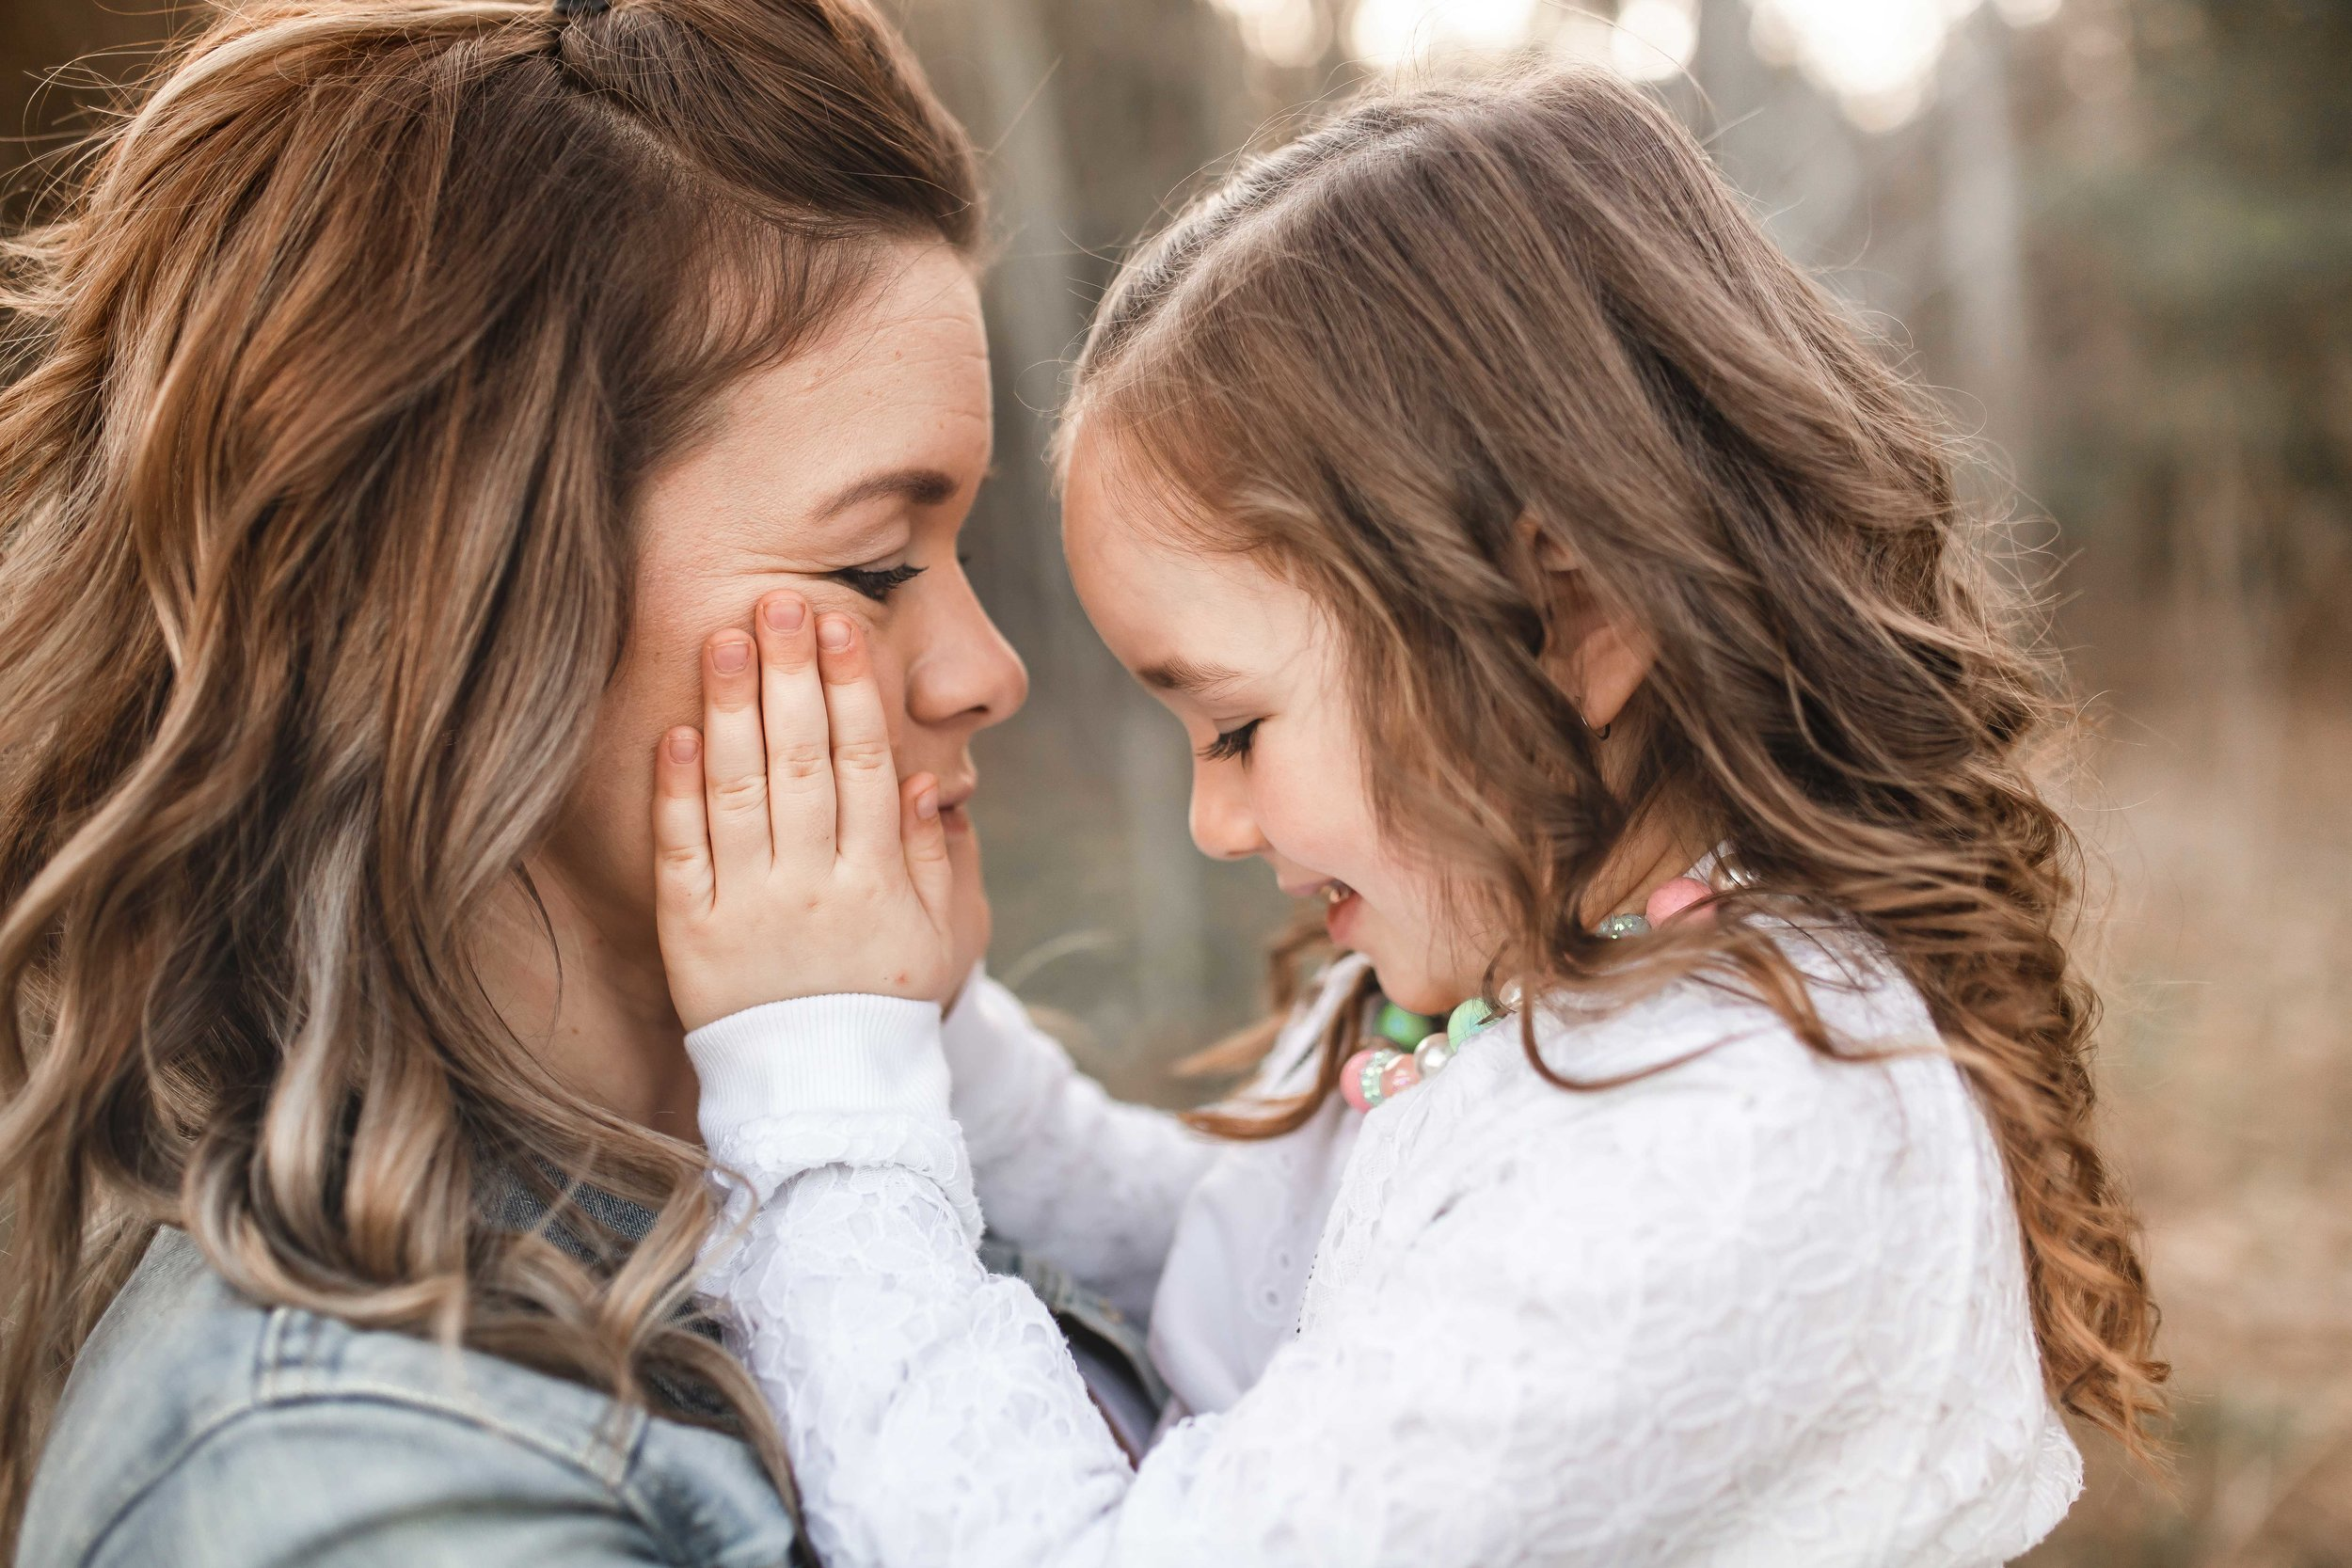 Amy-D-Photography--Family-Photography--Mom-and-Daughter-Session--Mothers-Day-Session--Mom-Photos--Family-Photos--Mom-and-Children-Session--Golden-Hour-Session-65.jpg